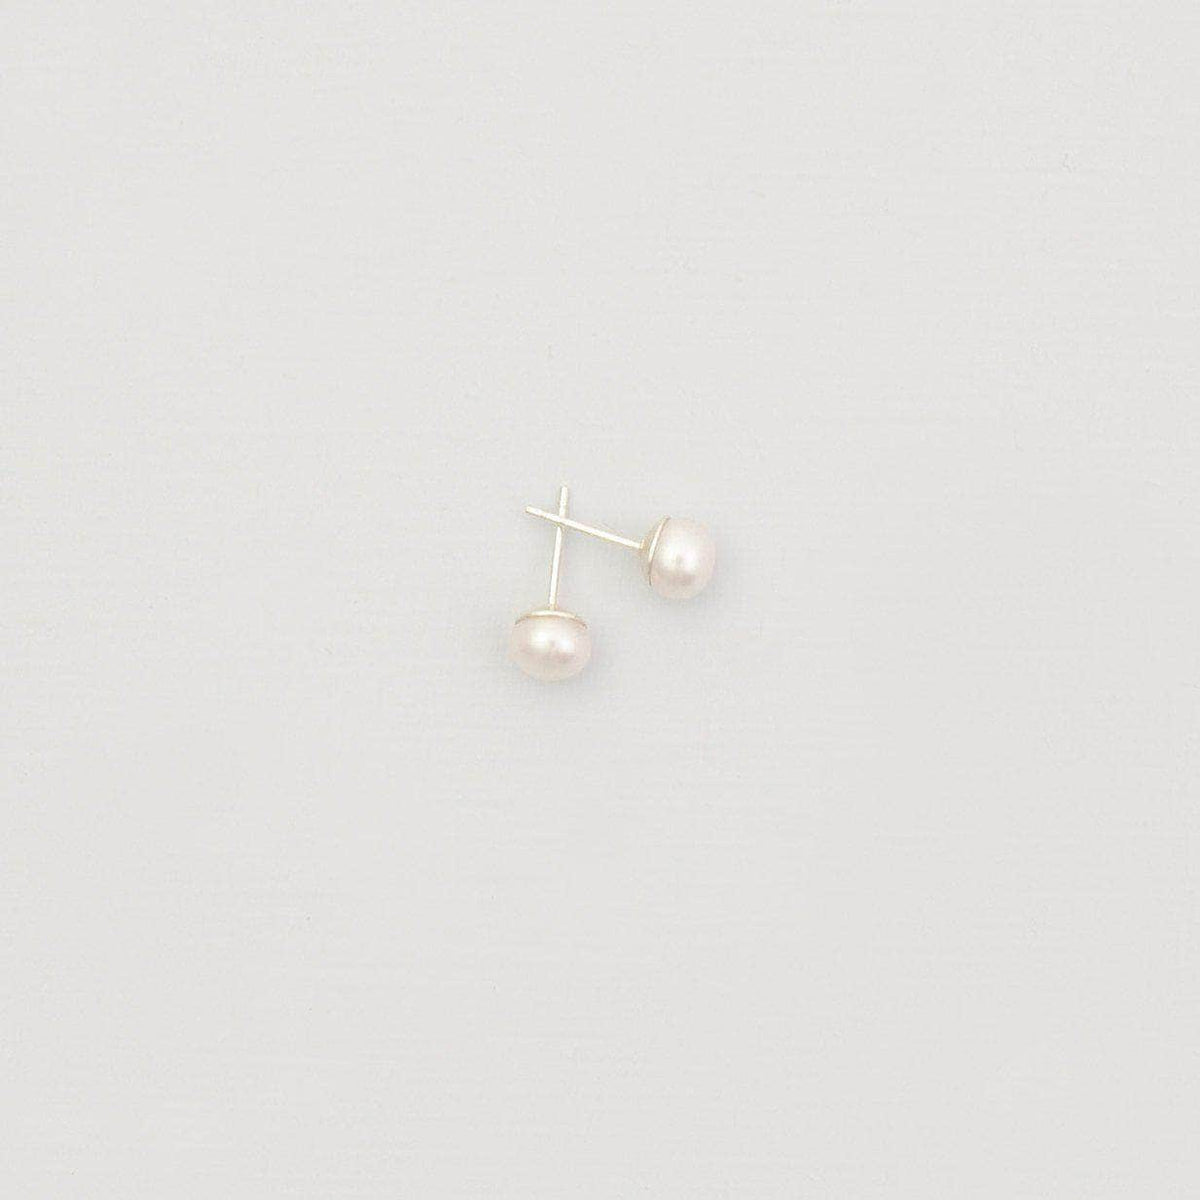 Wedding Earring Silver Freshwater pearl stud wedding earrings - 'Priya'